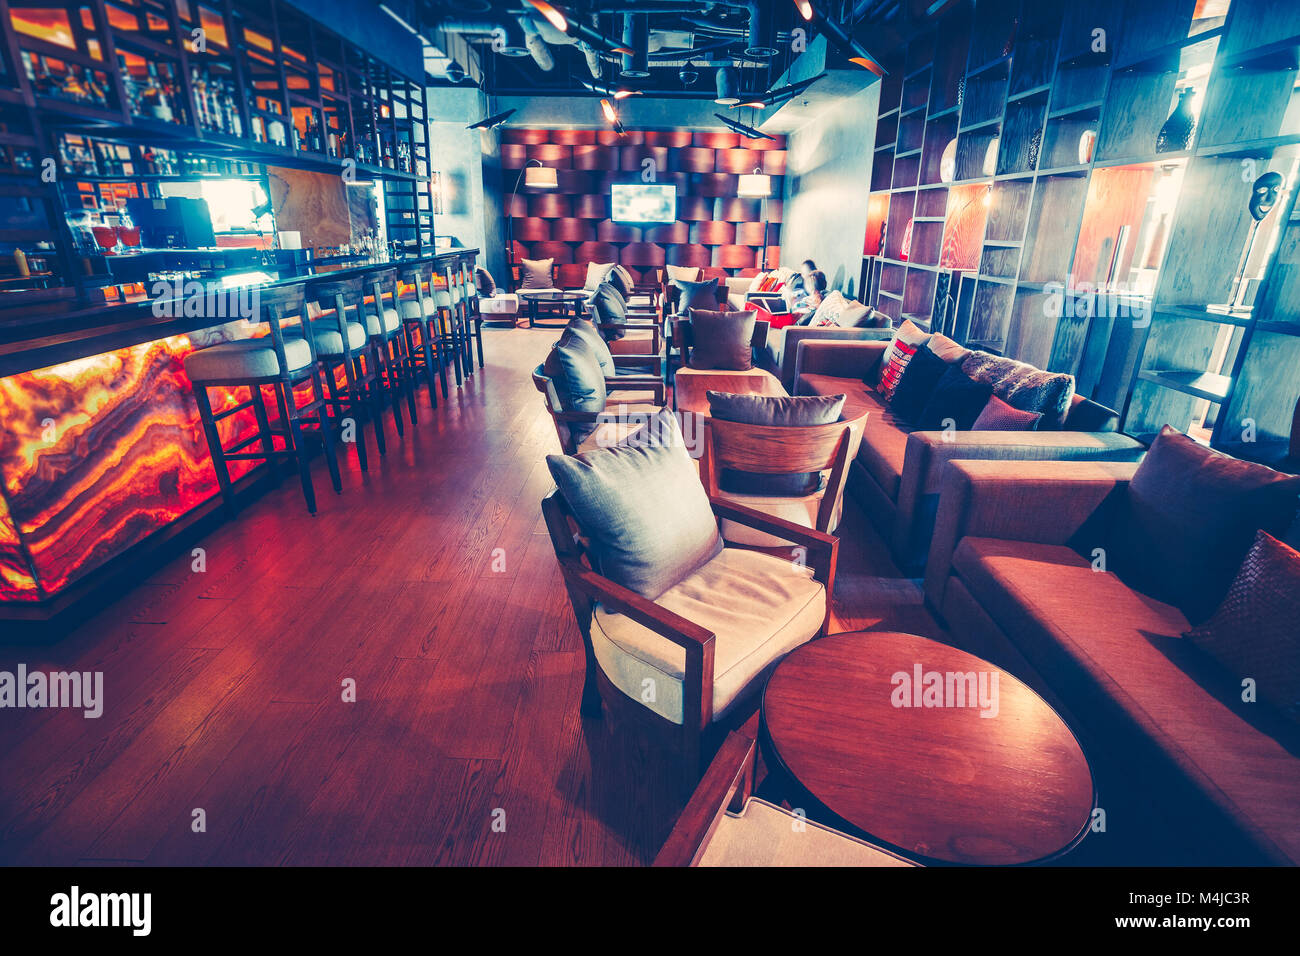 Stylish Modern Interior Of The Cozy Restaurant In Dark Blue And Red Stock Photo Alamy